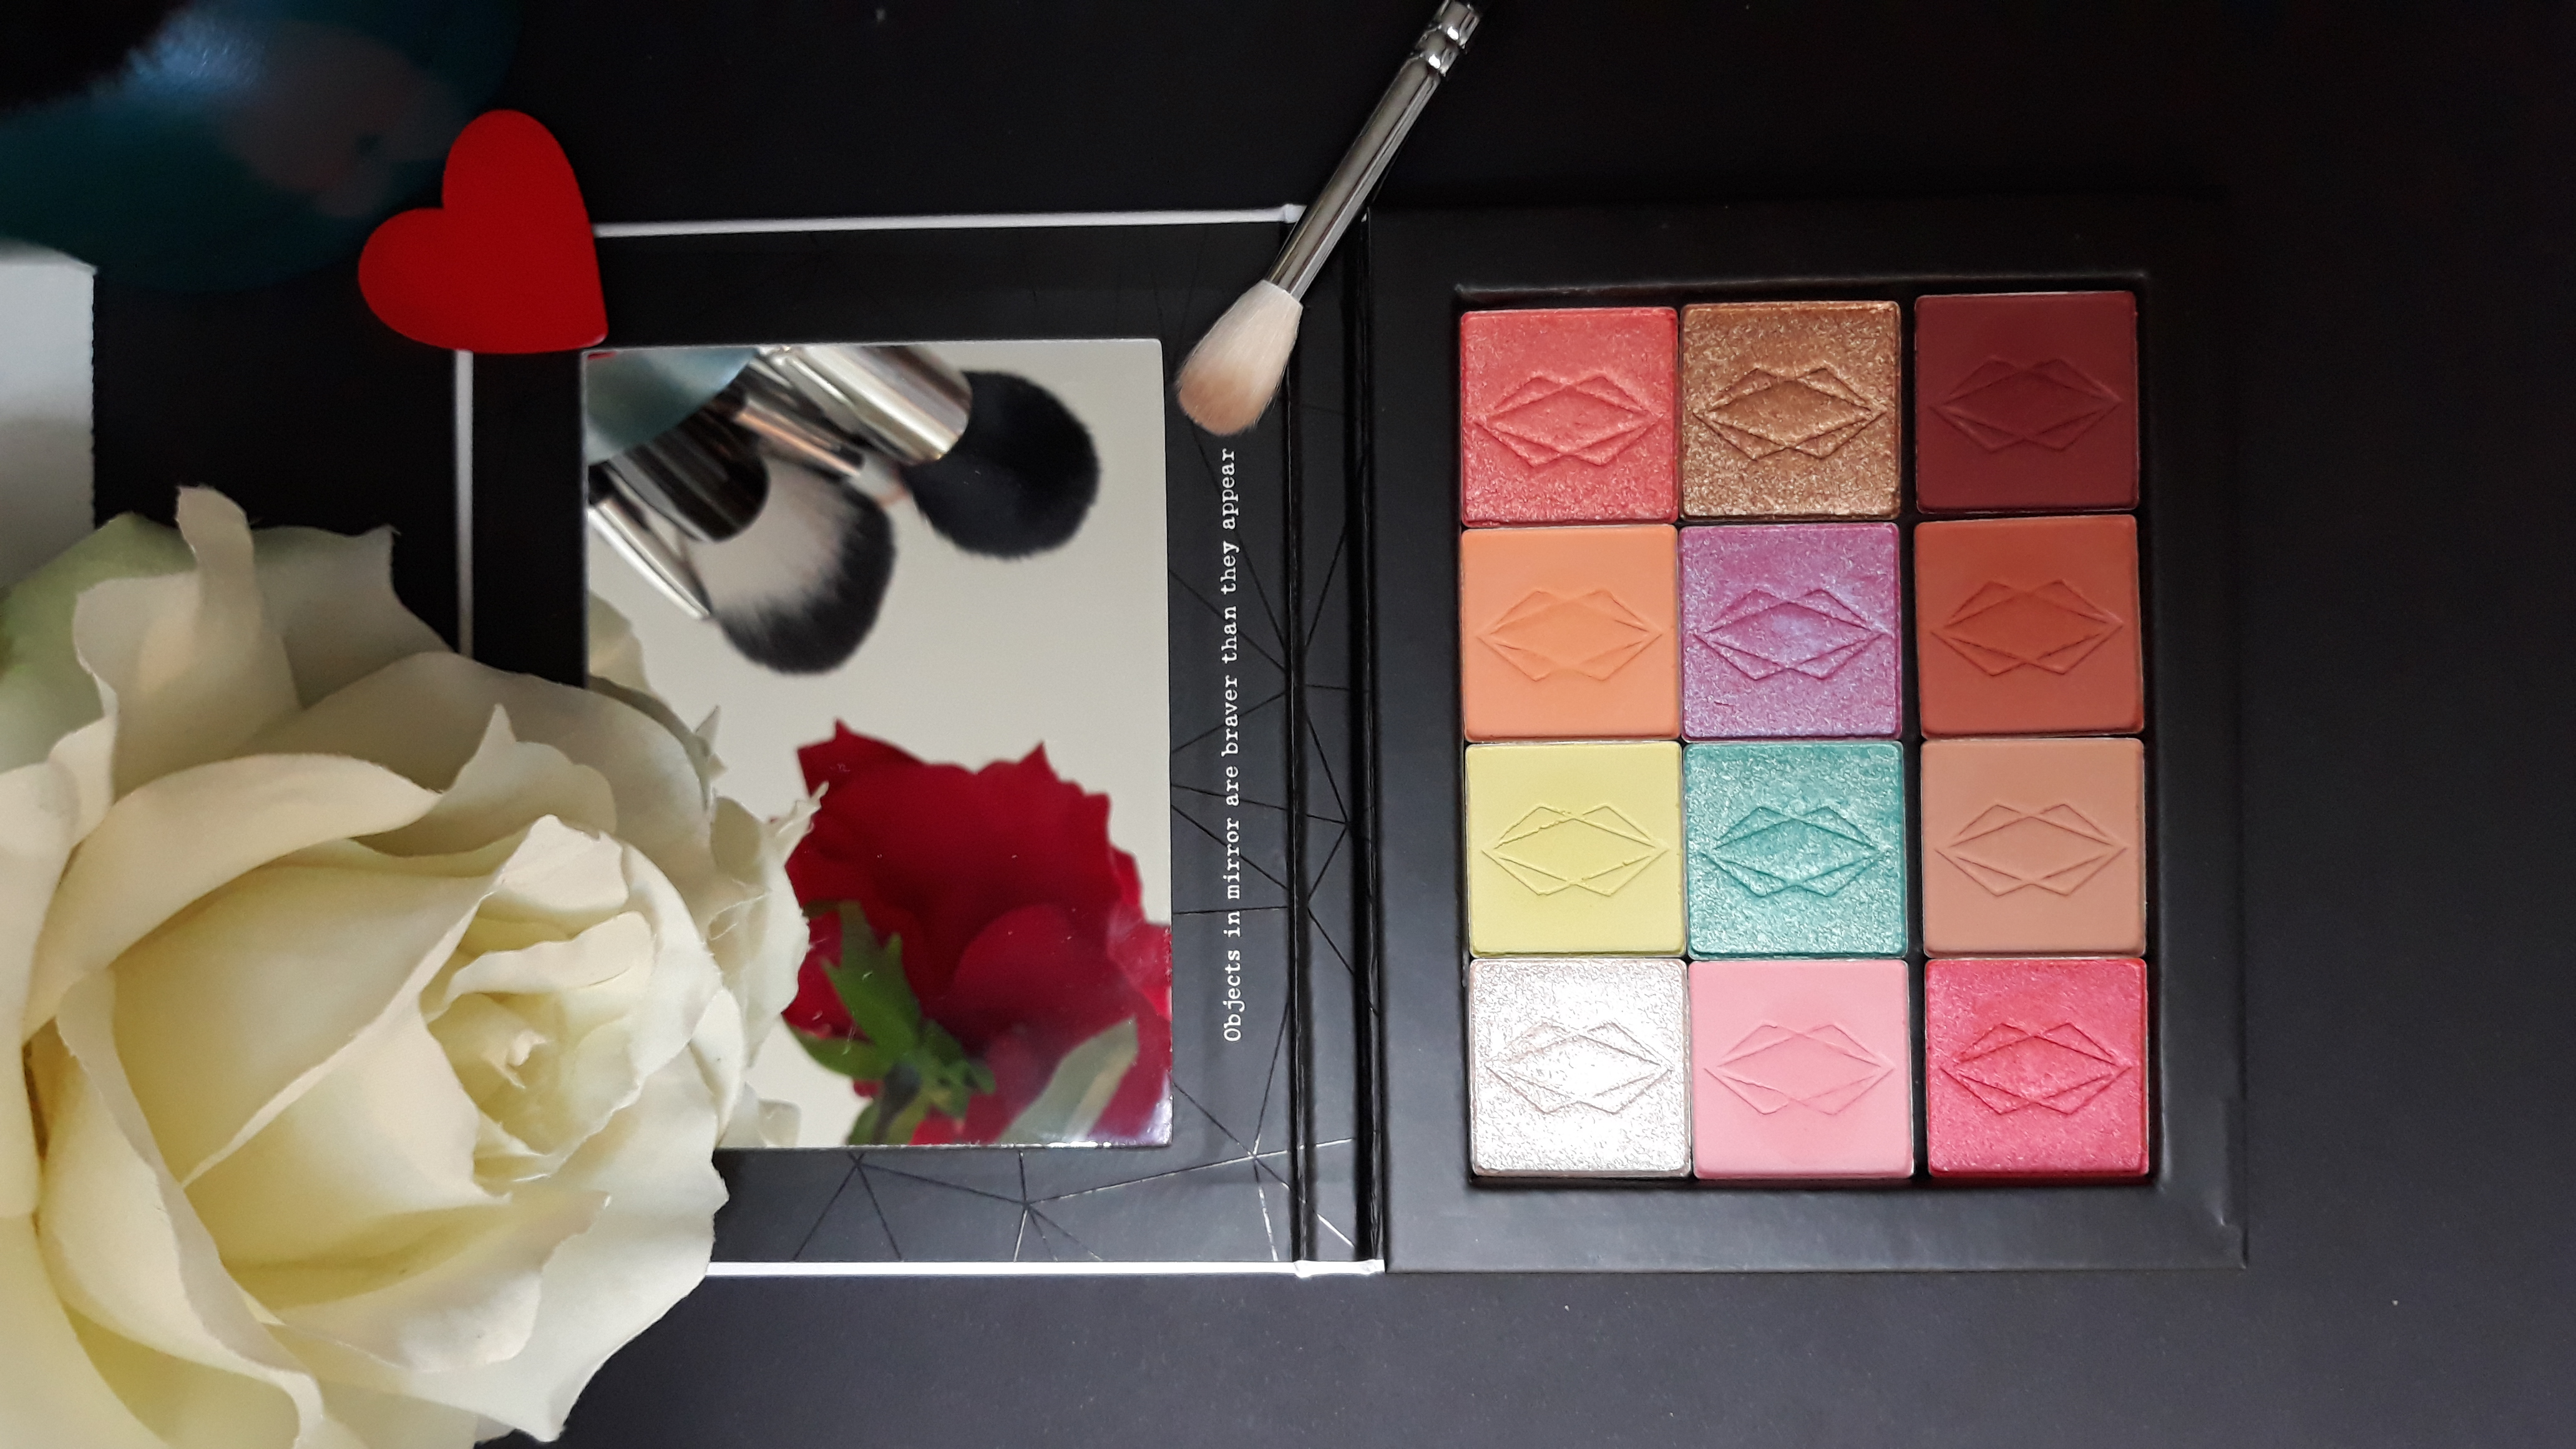 Palette componibile Lethal cosmetics